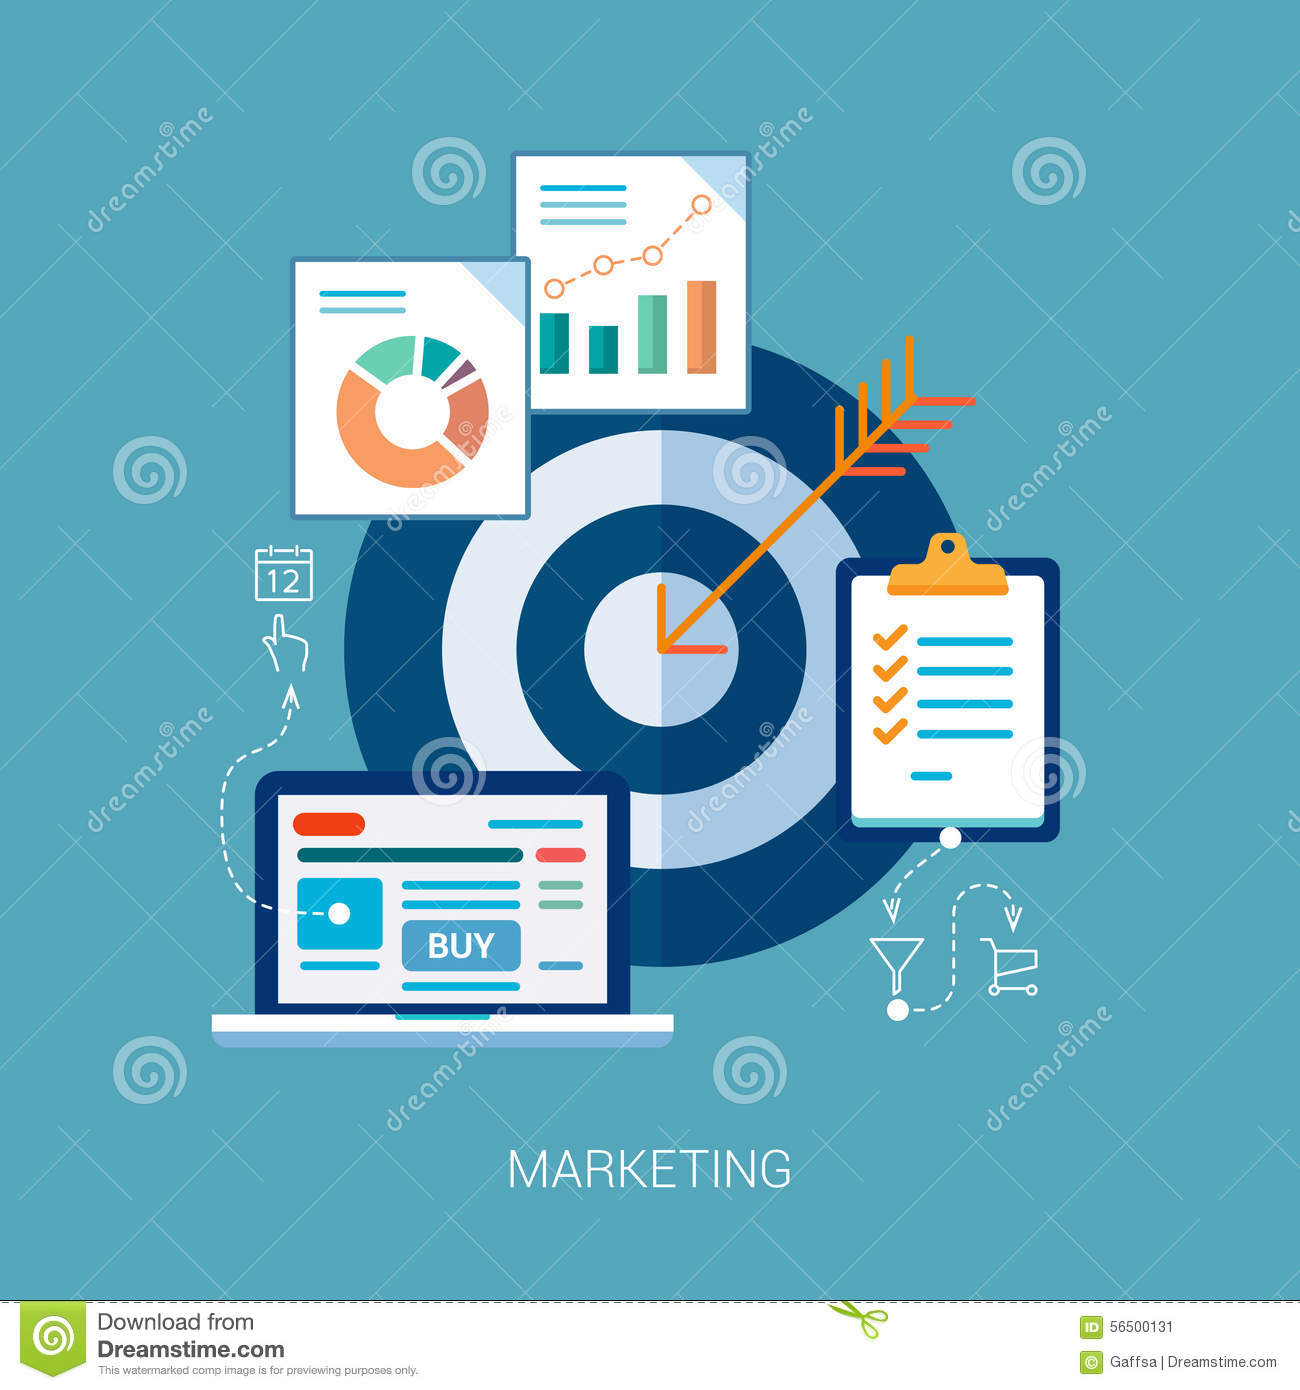 marketing and s analytics tasks flat icons stock vector marketing and s analytics tasks flat icons stock image